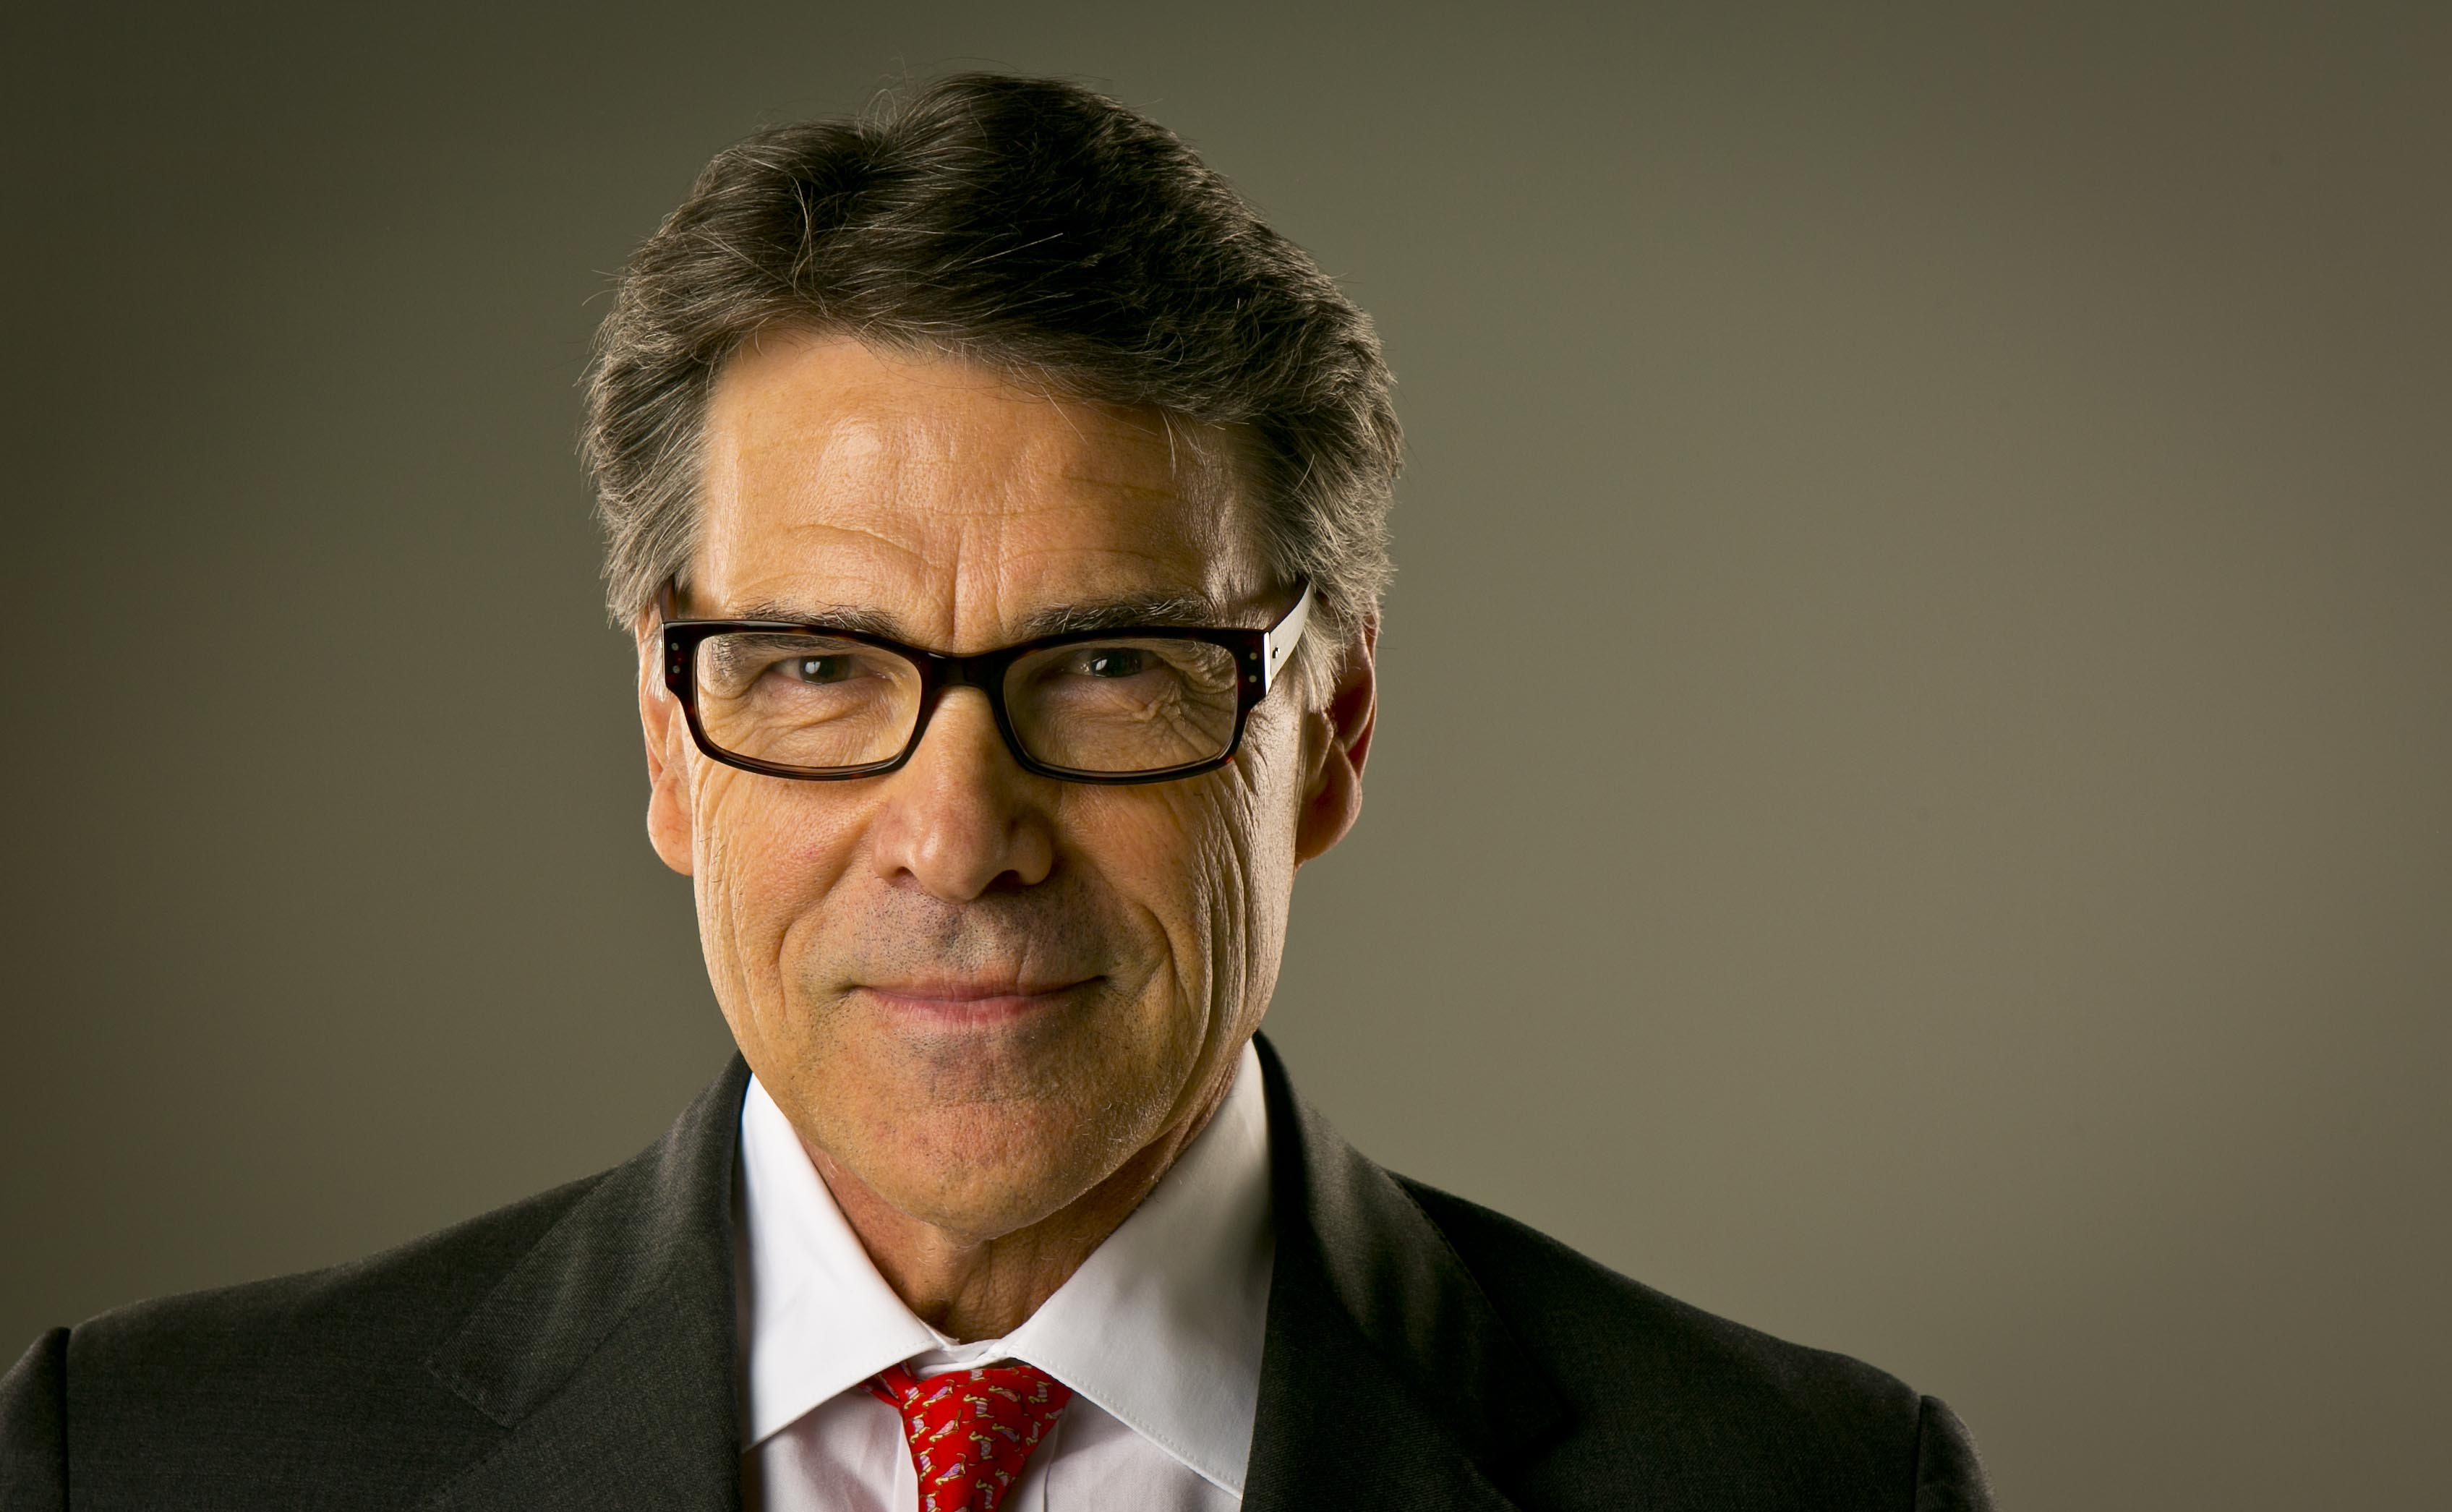 Governor Rick Perry Gay 51